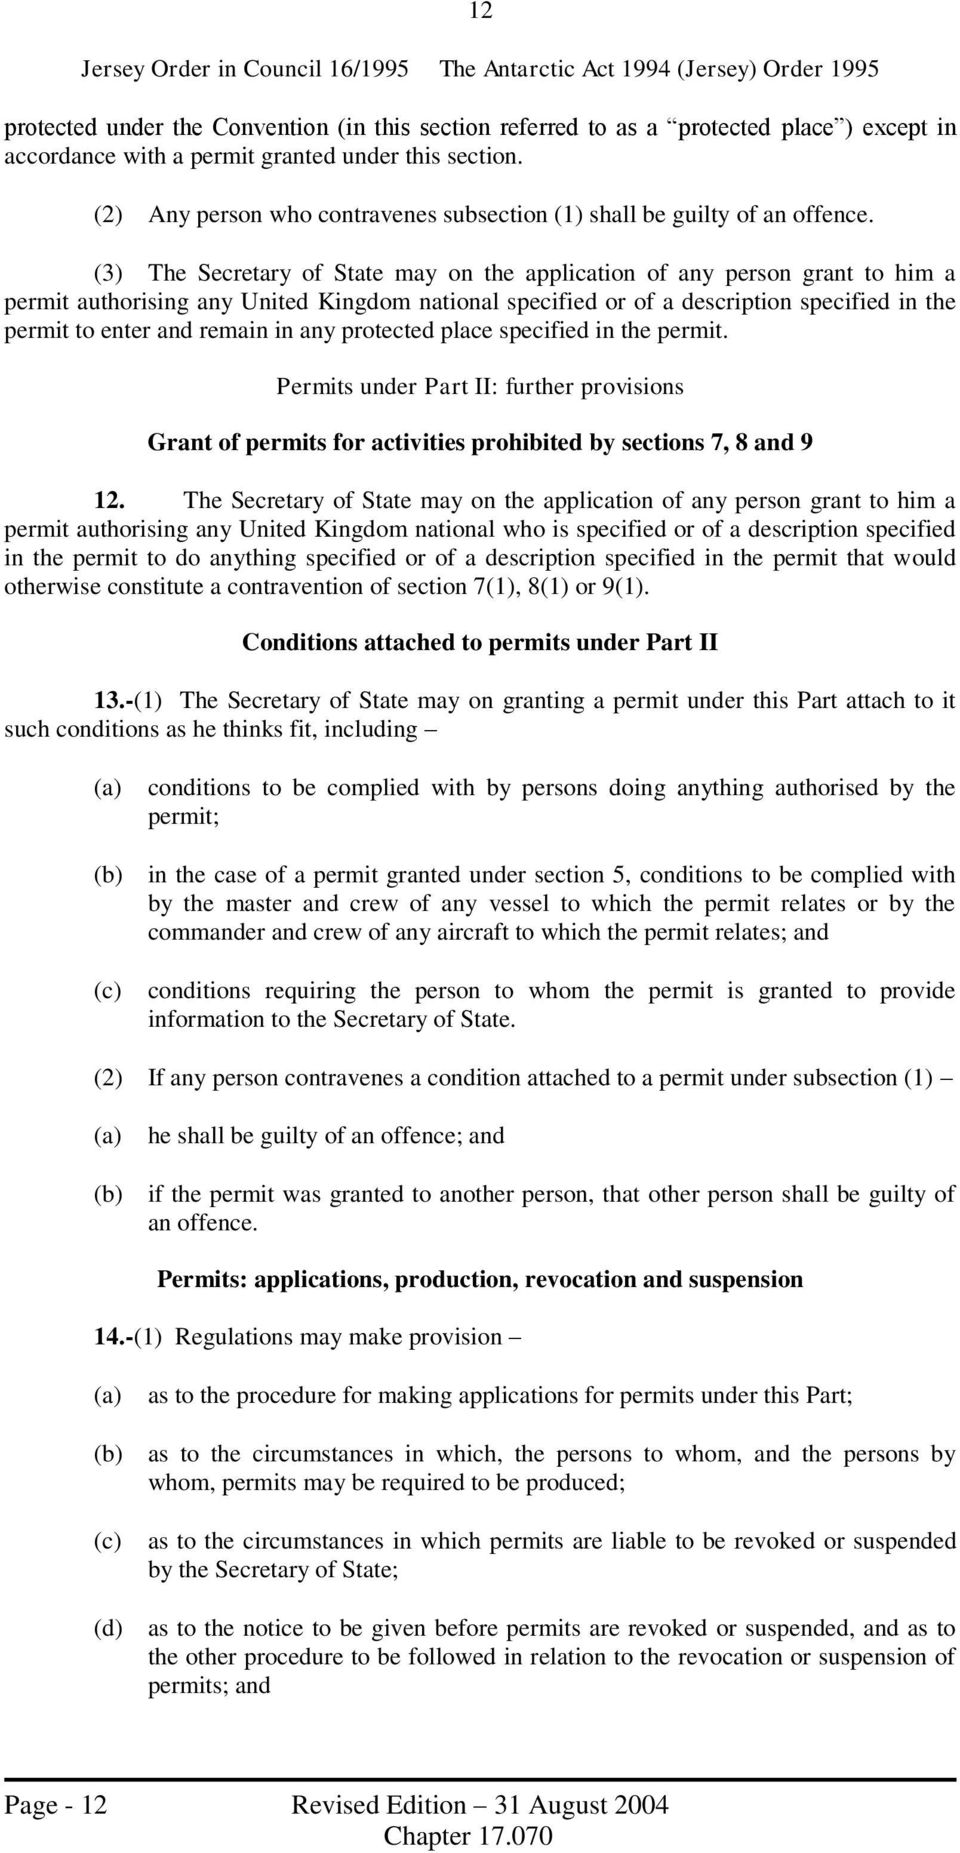 (3) The Secretary of State may on the application of any person grant to him a permit authorising any United Kingdom national specified or of a description specified in the permit to enter and remain